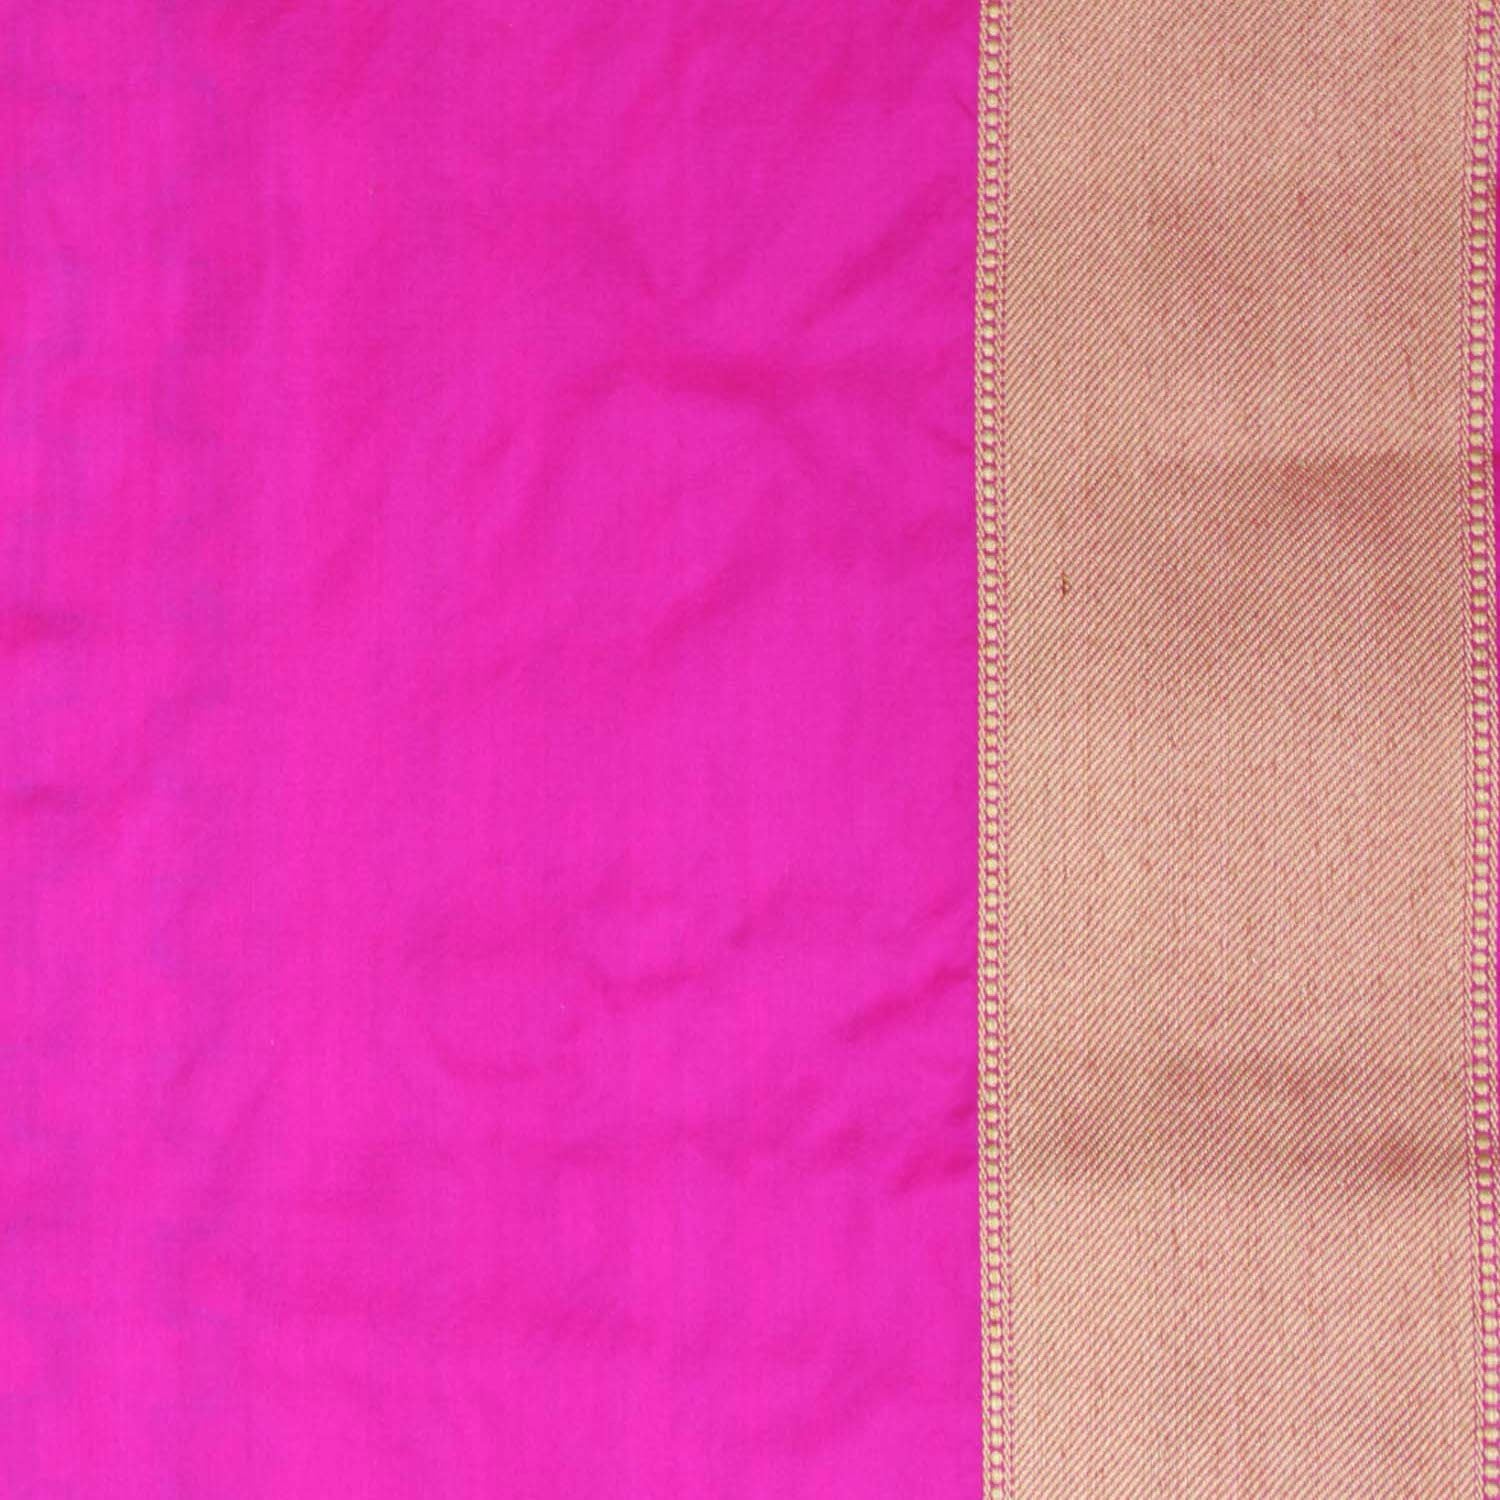 Indian Pink-Orange Pure Katan Silk Banarasi Handloom Saree - Tilfi - 7